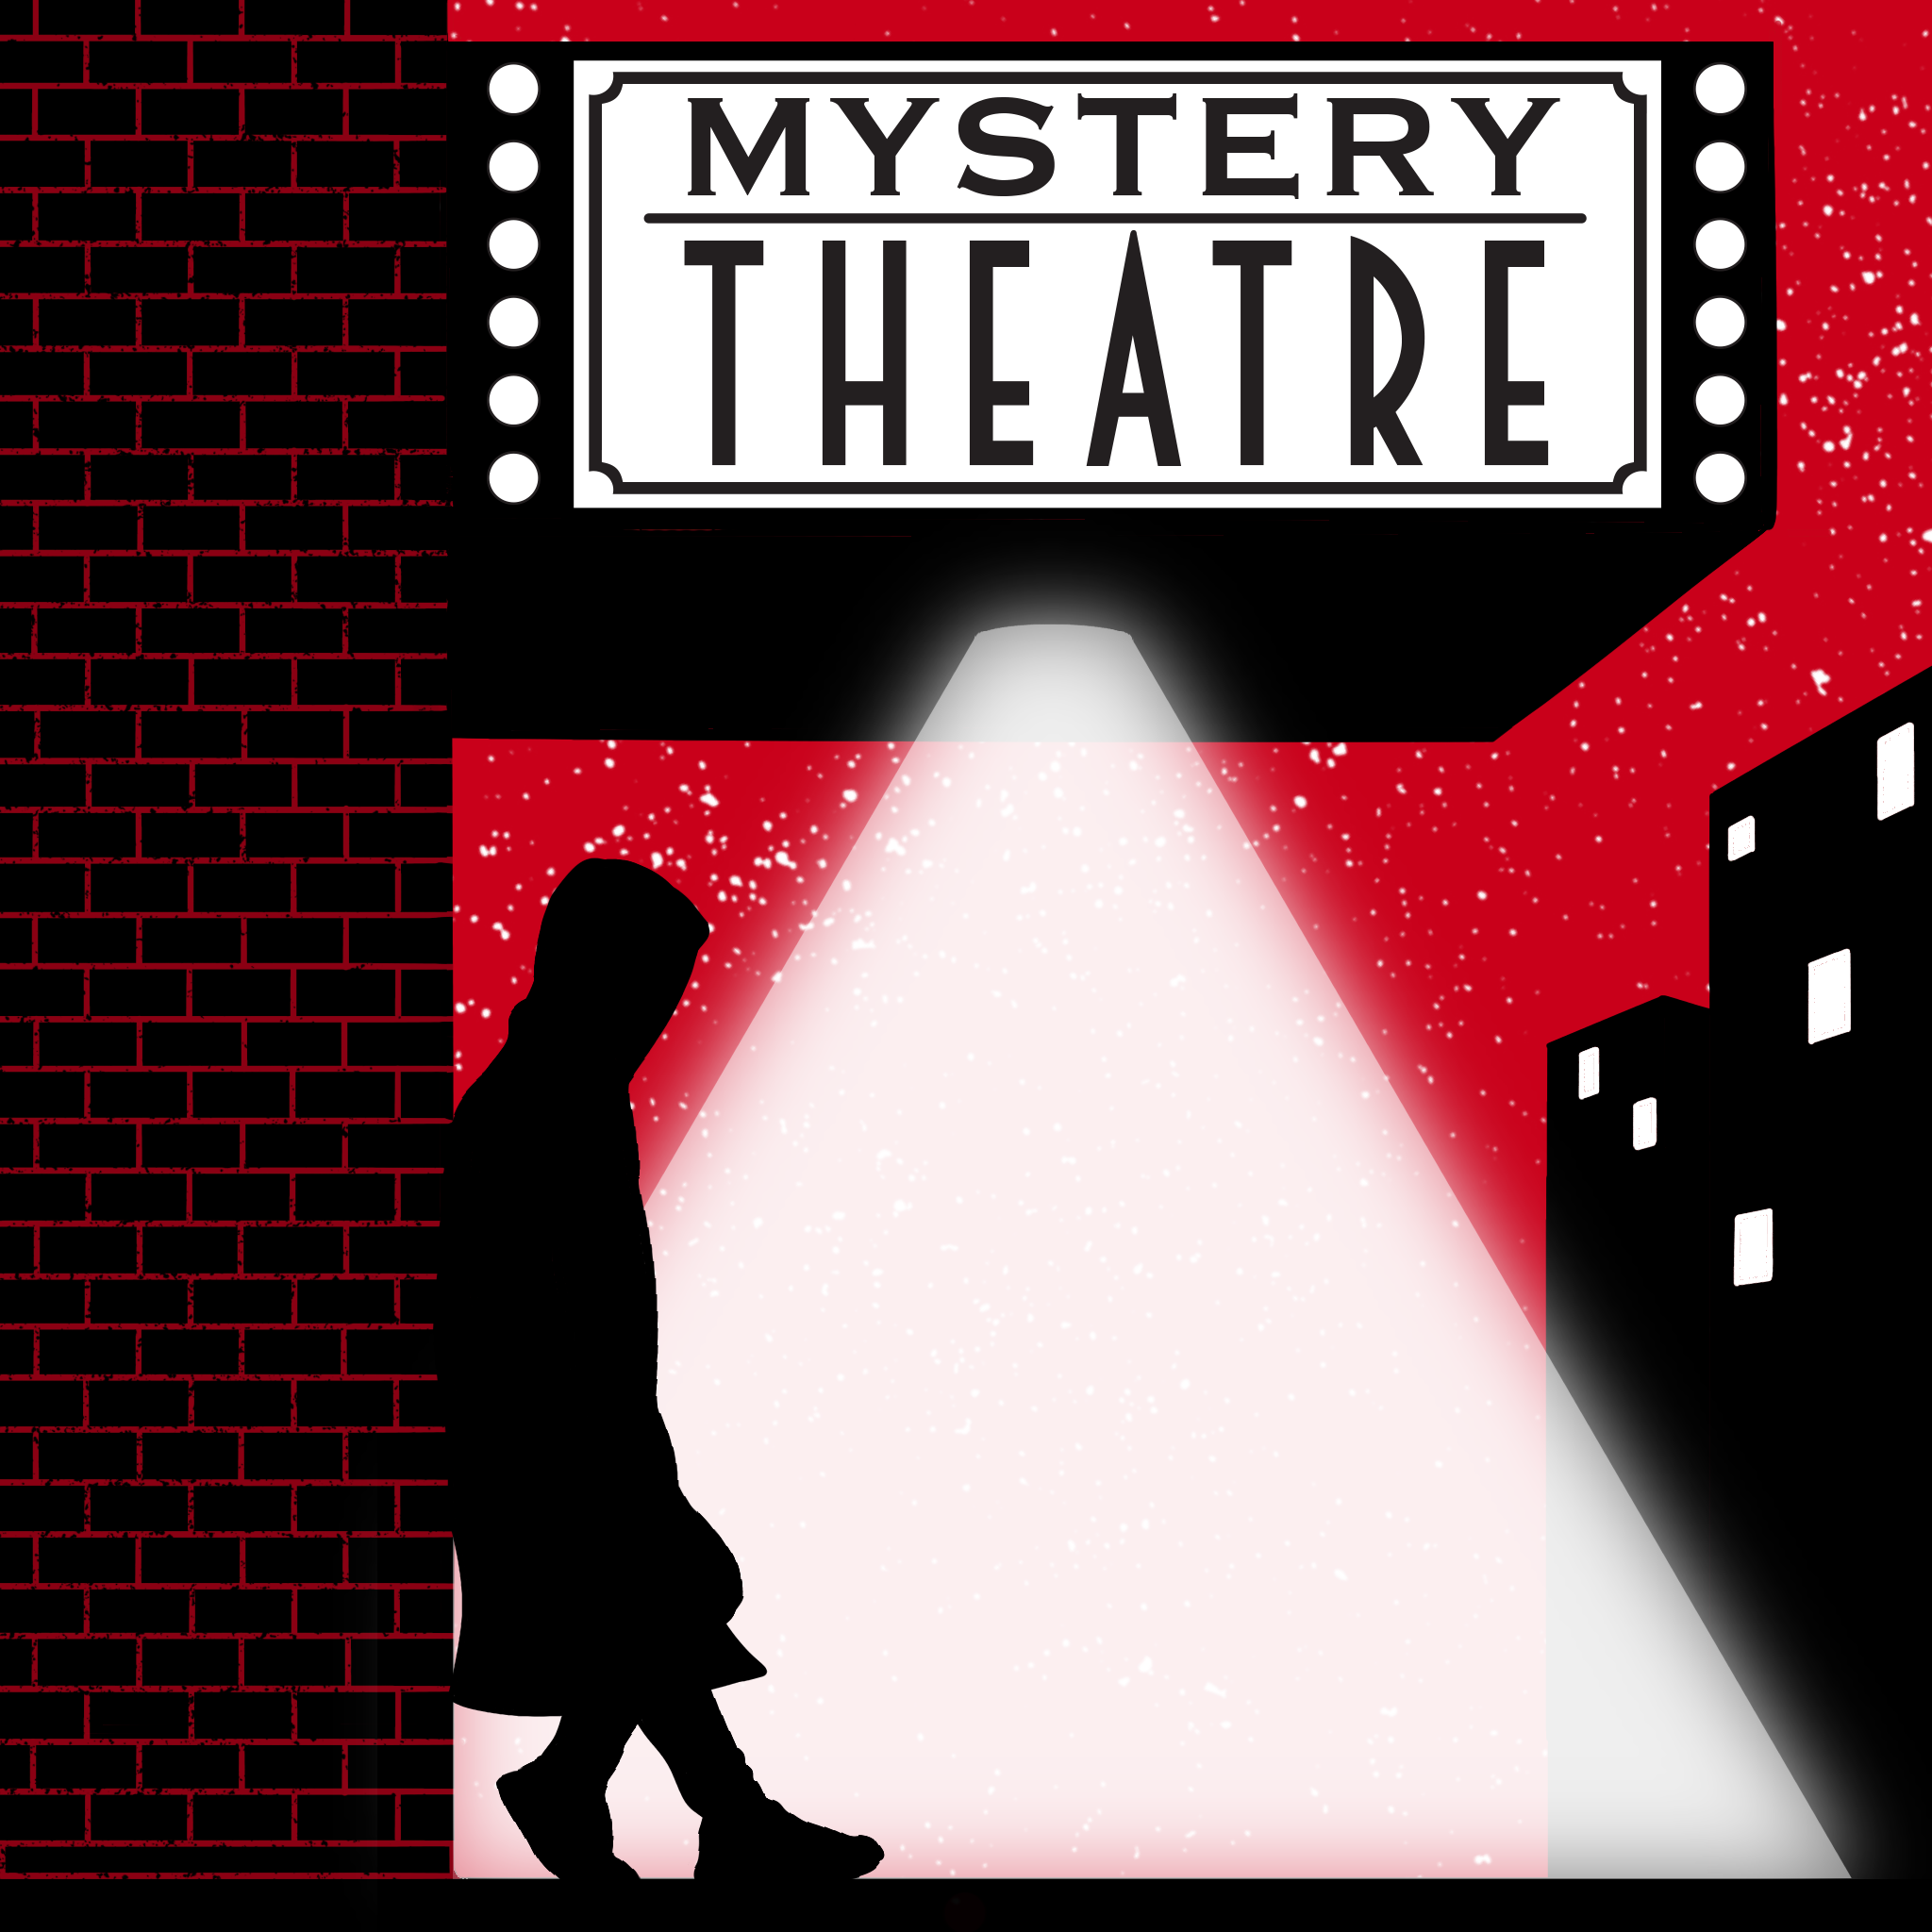 Artwork for Prime Stage Theatre's A Knavish Piece of Mystery Act II